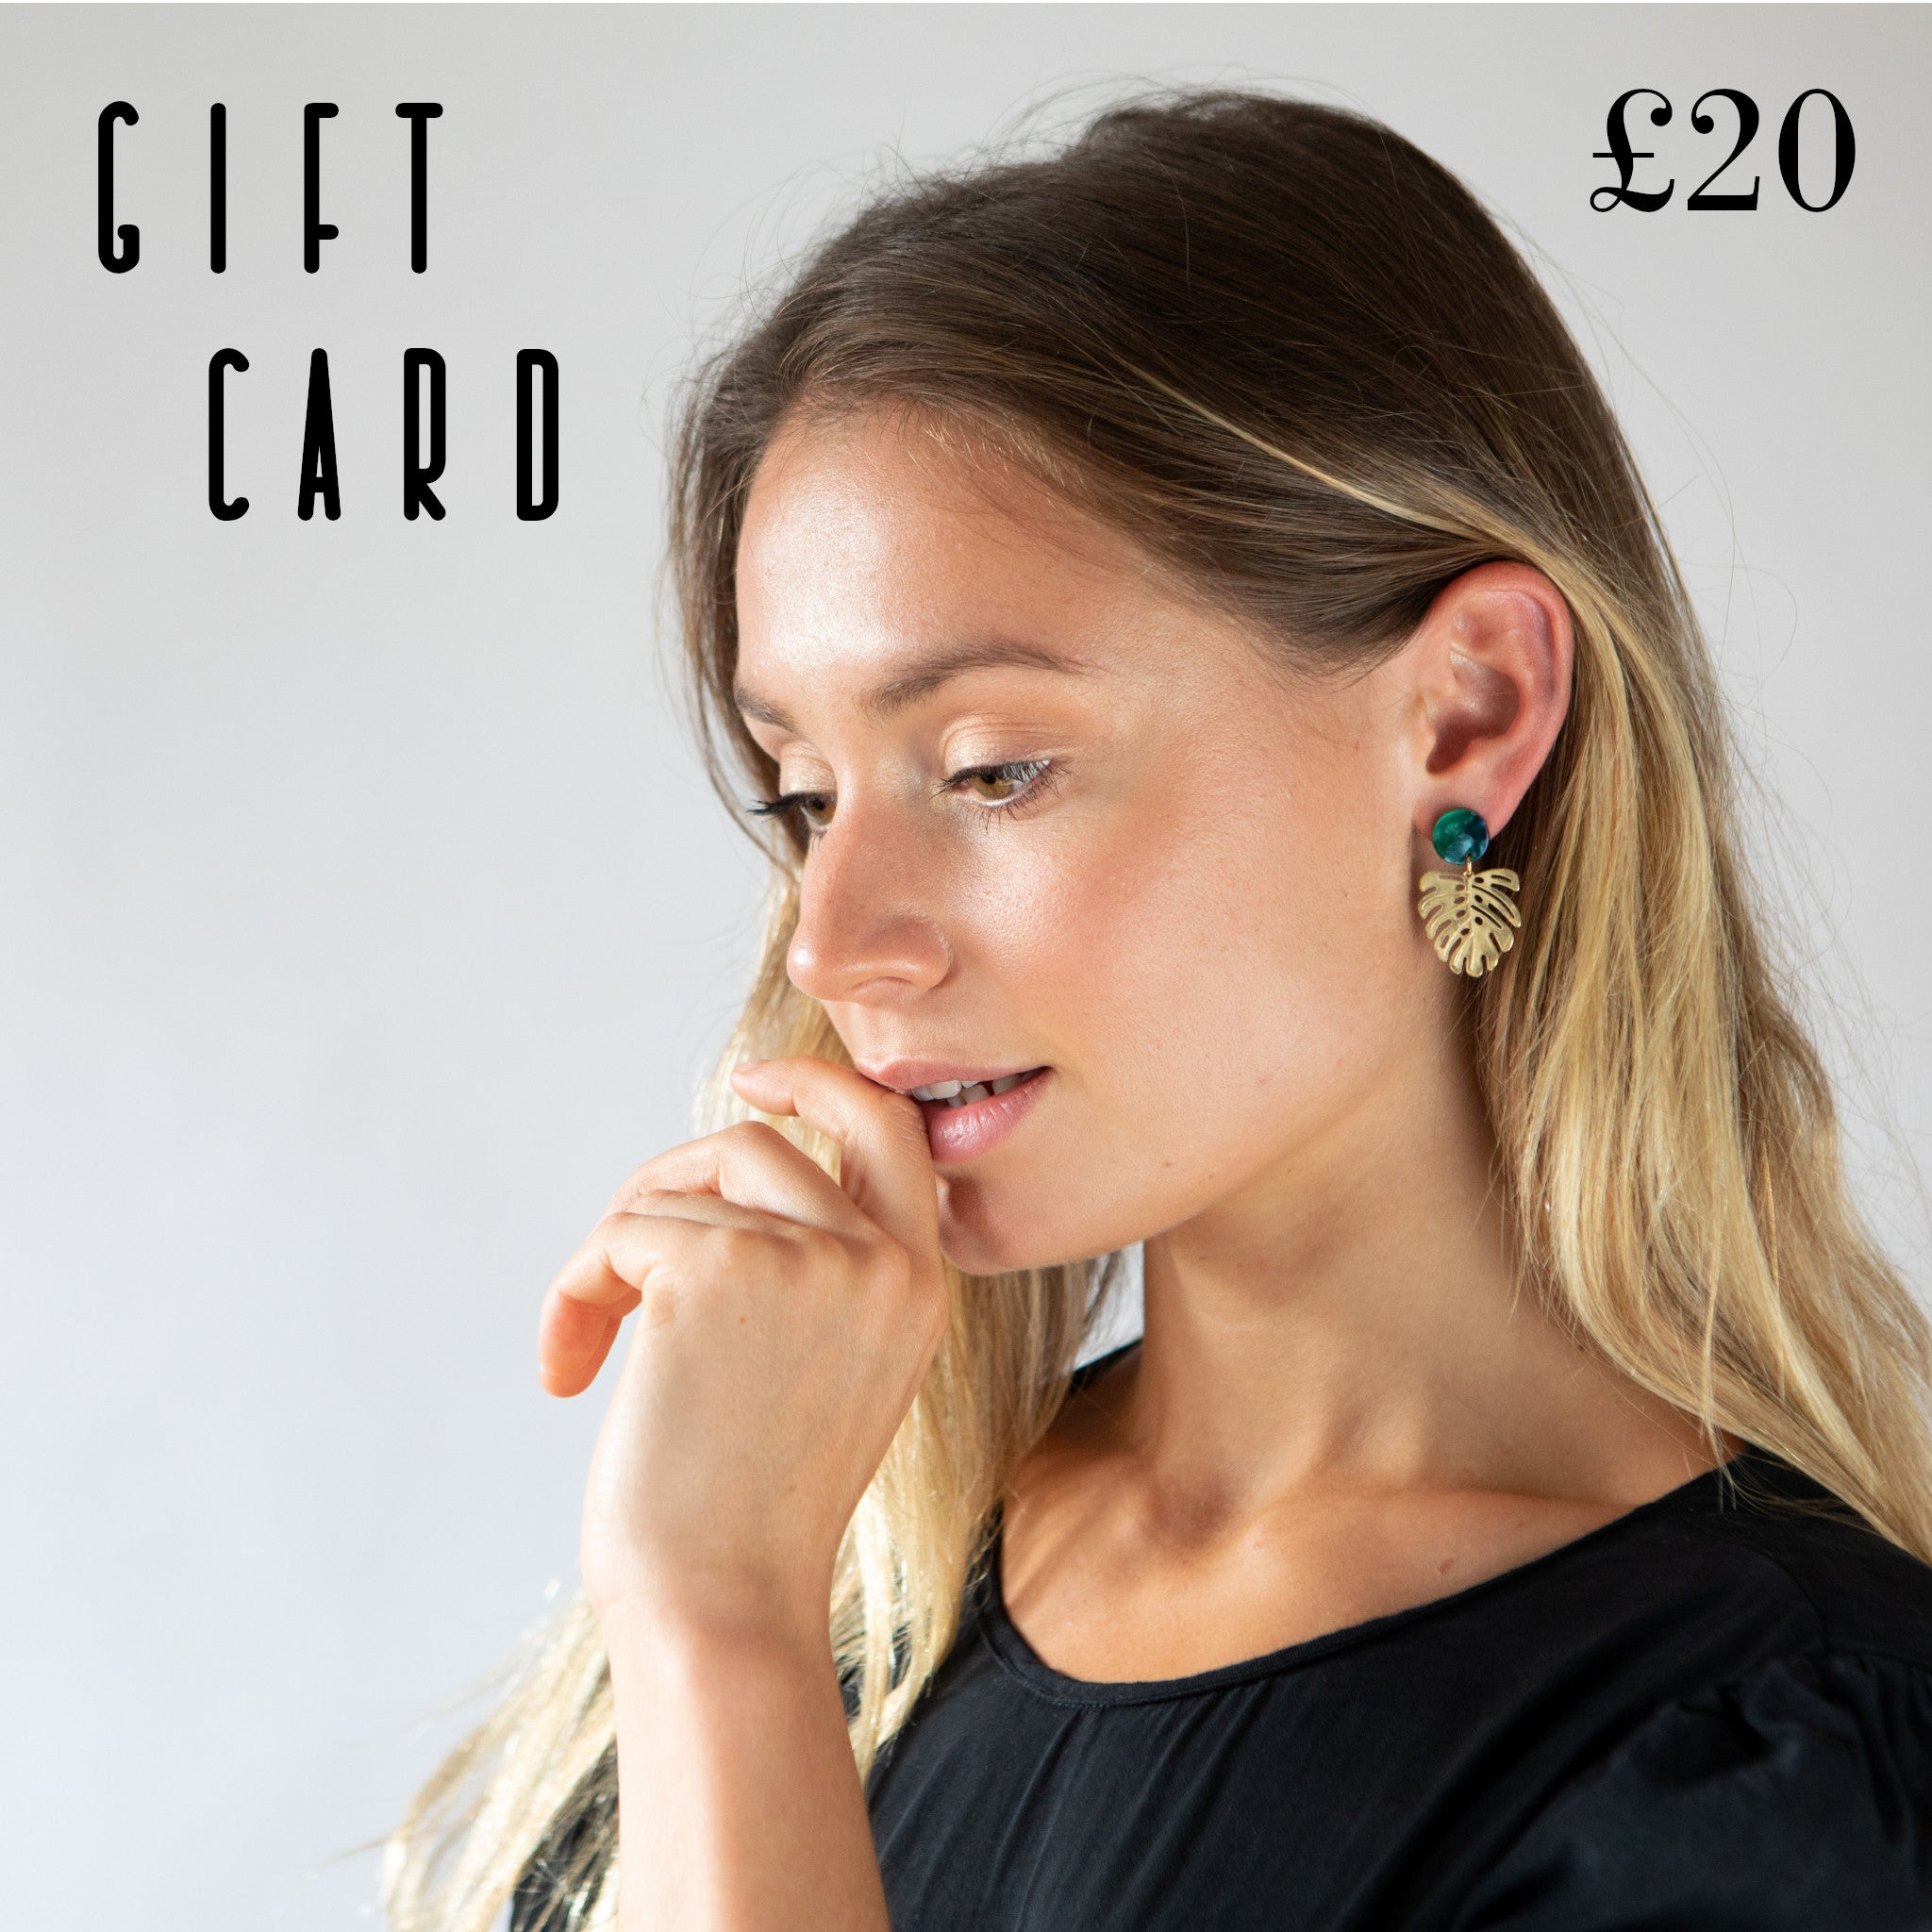 Gift Card - Mara studio